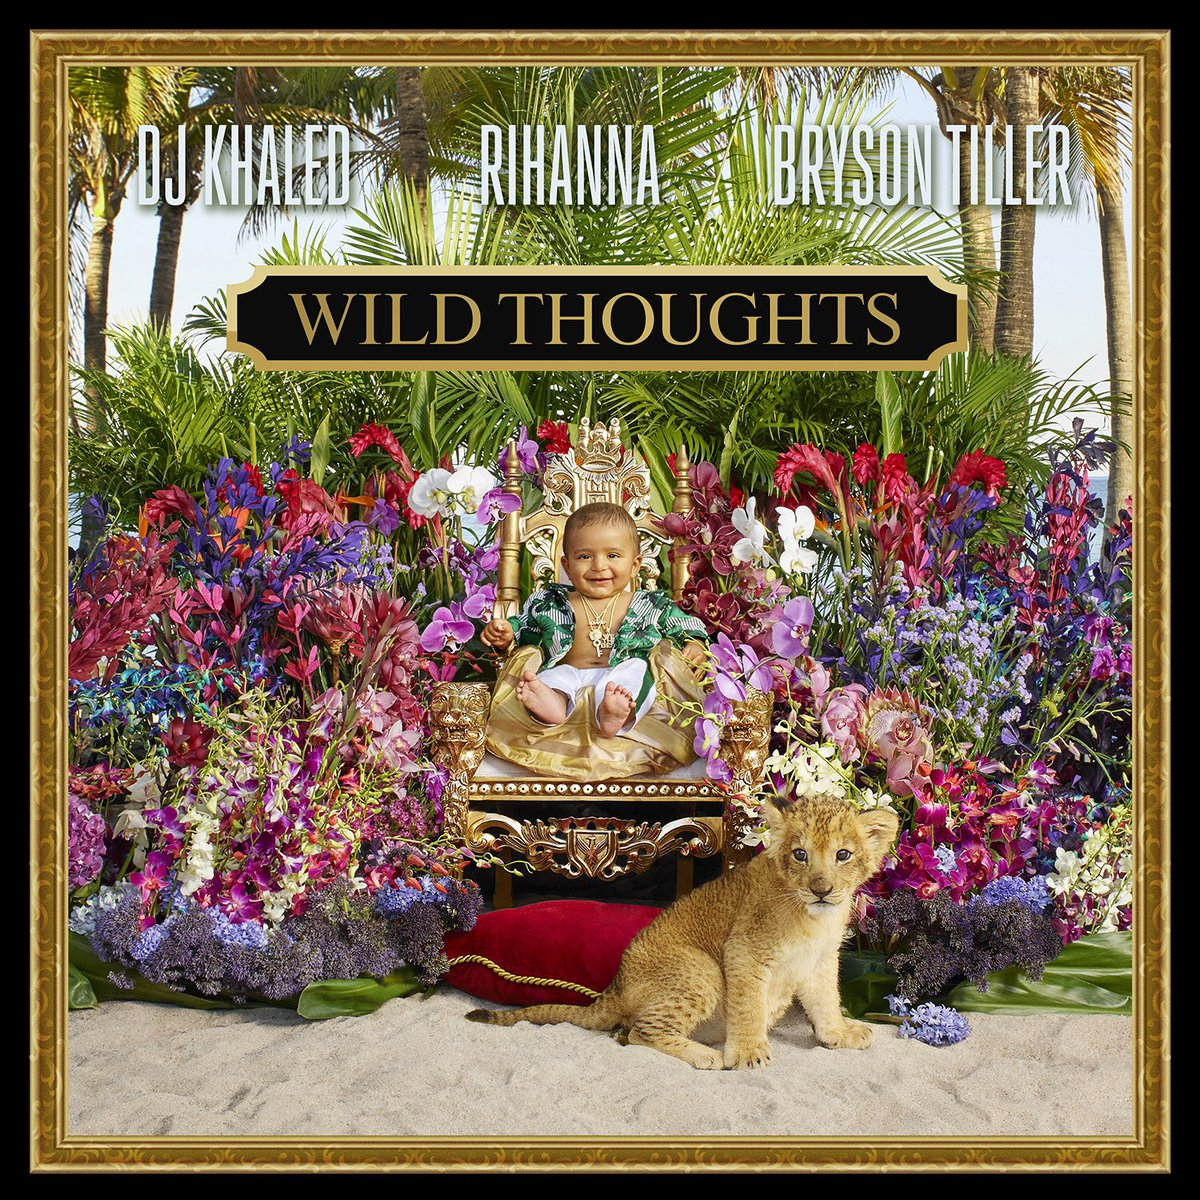 .@asahdkhaled first thing tomorrow morning!!! 6AM EST. #WILDTHOUGHTS